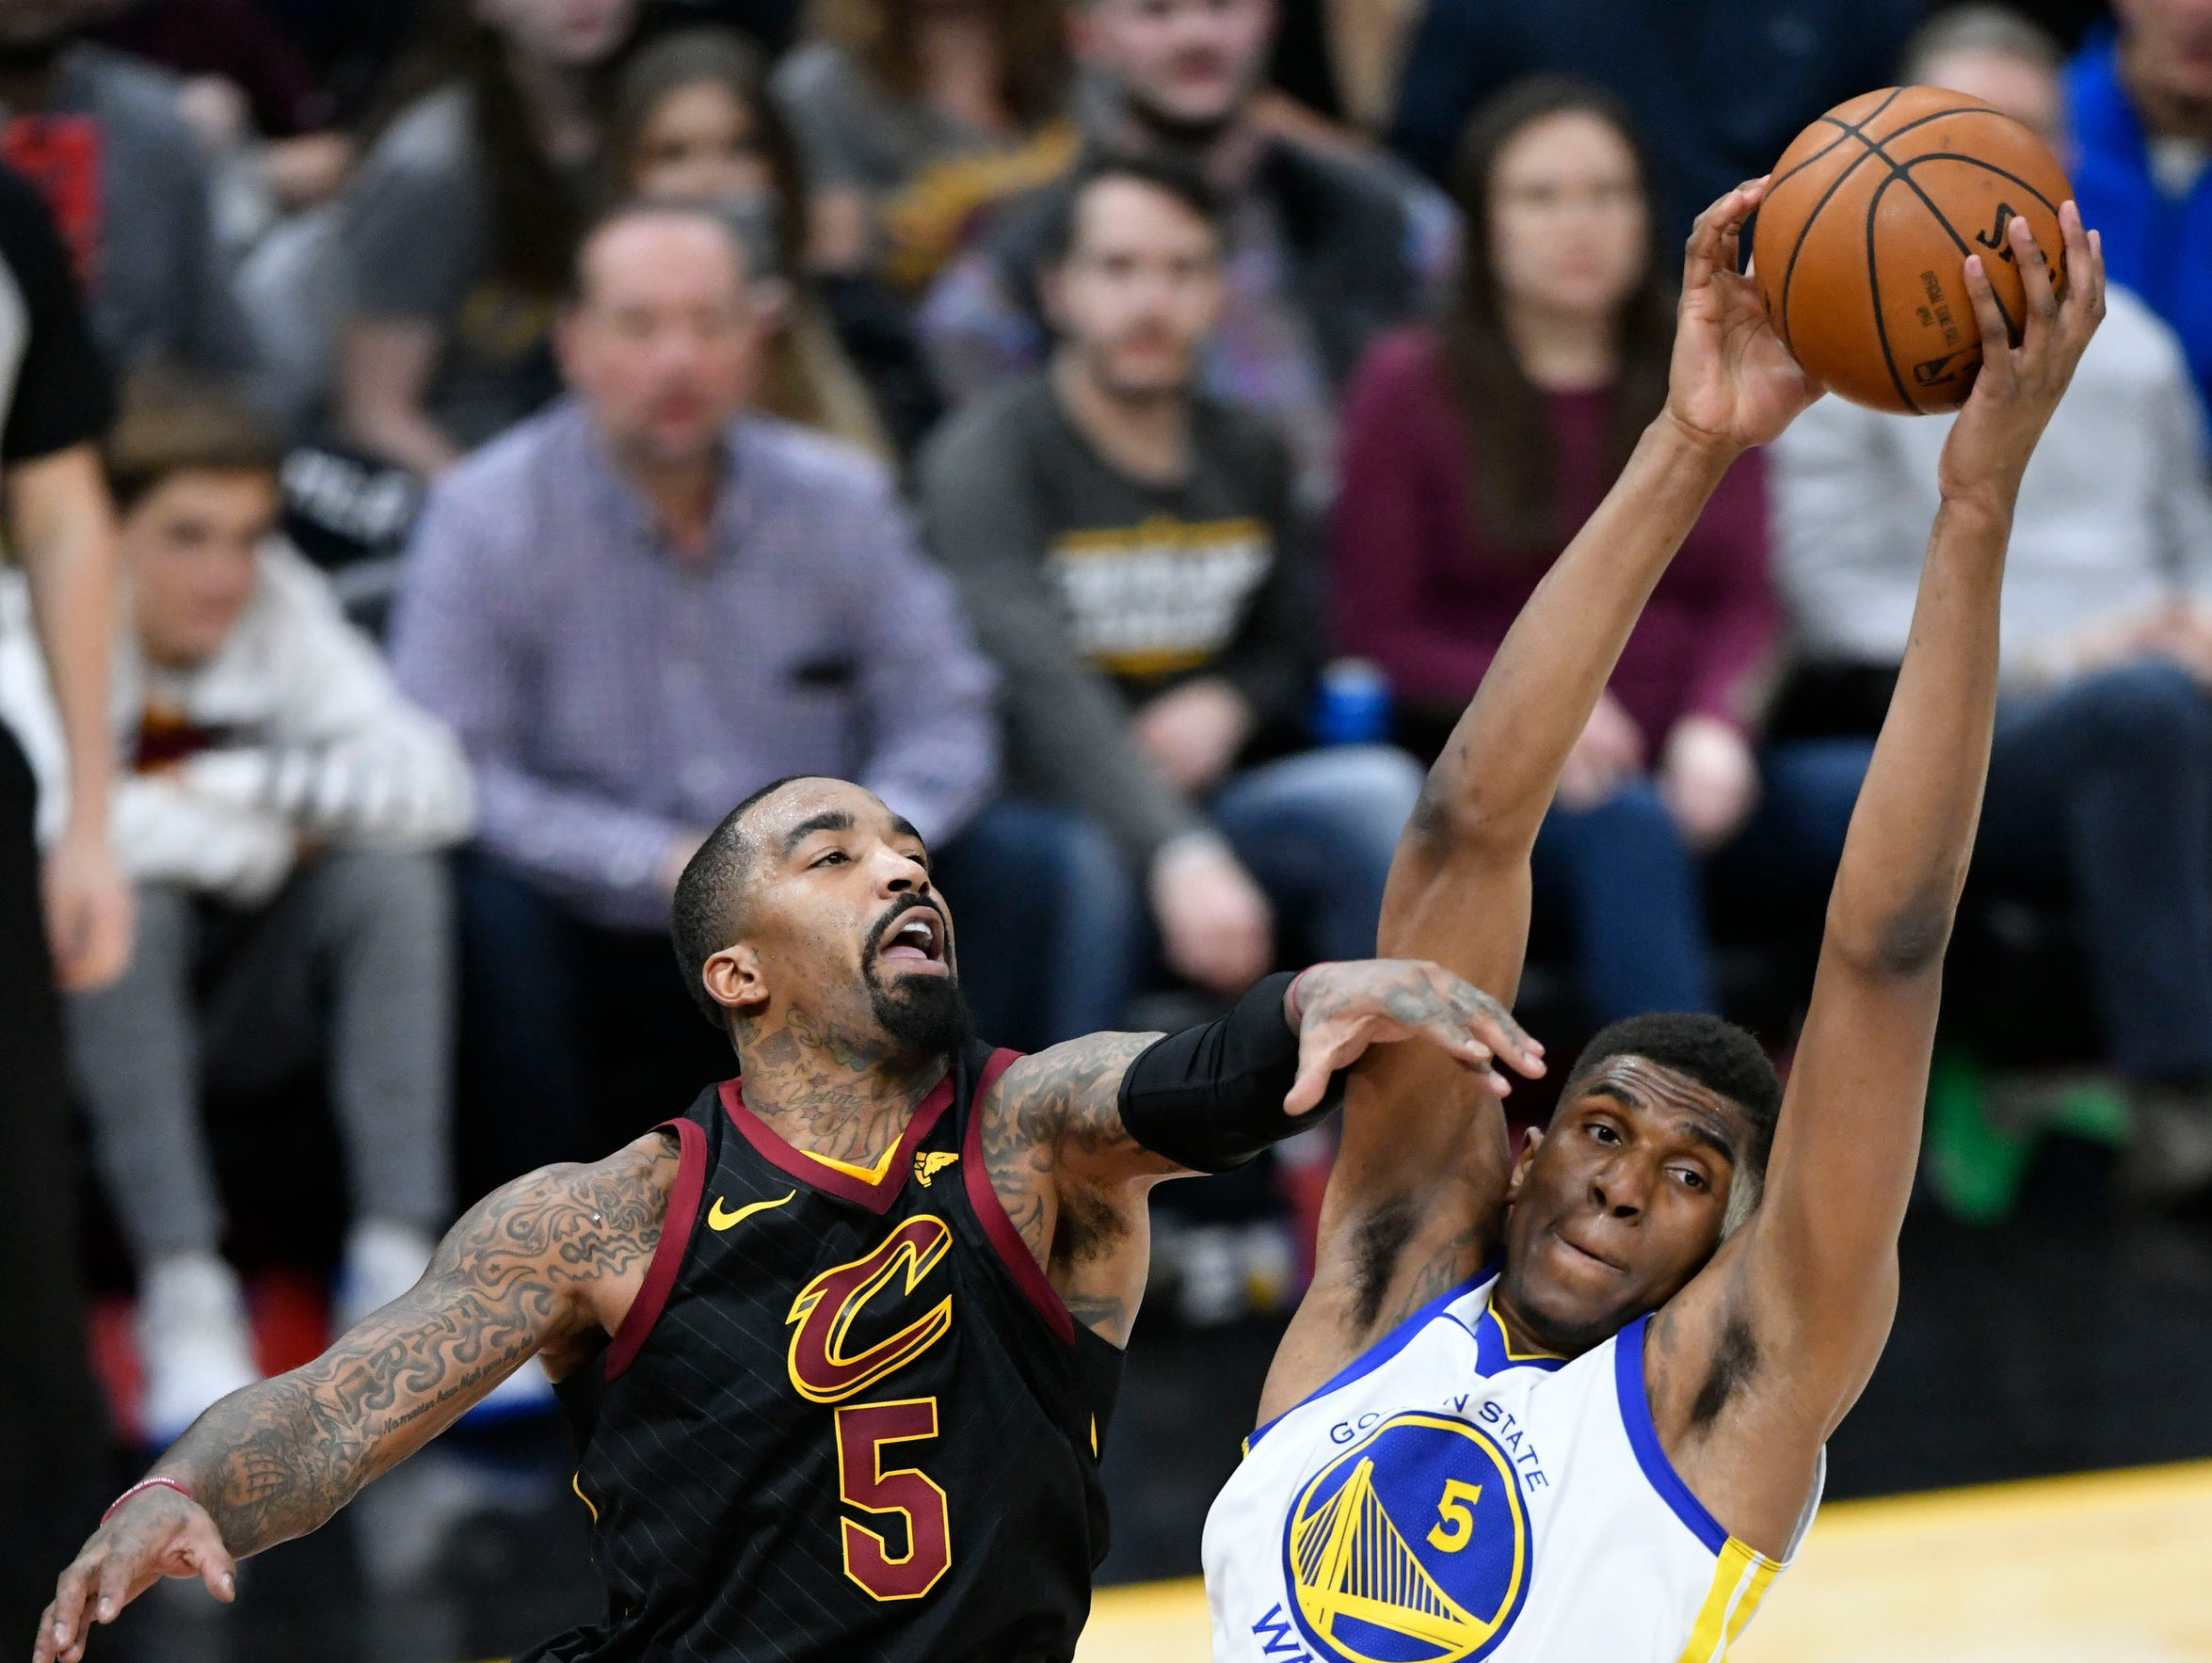 The Golden State Warriors' Kevon Looney rebounds the